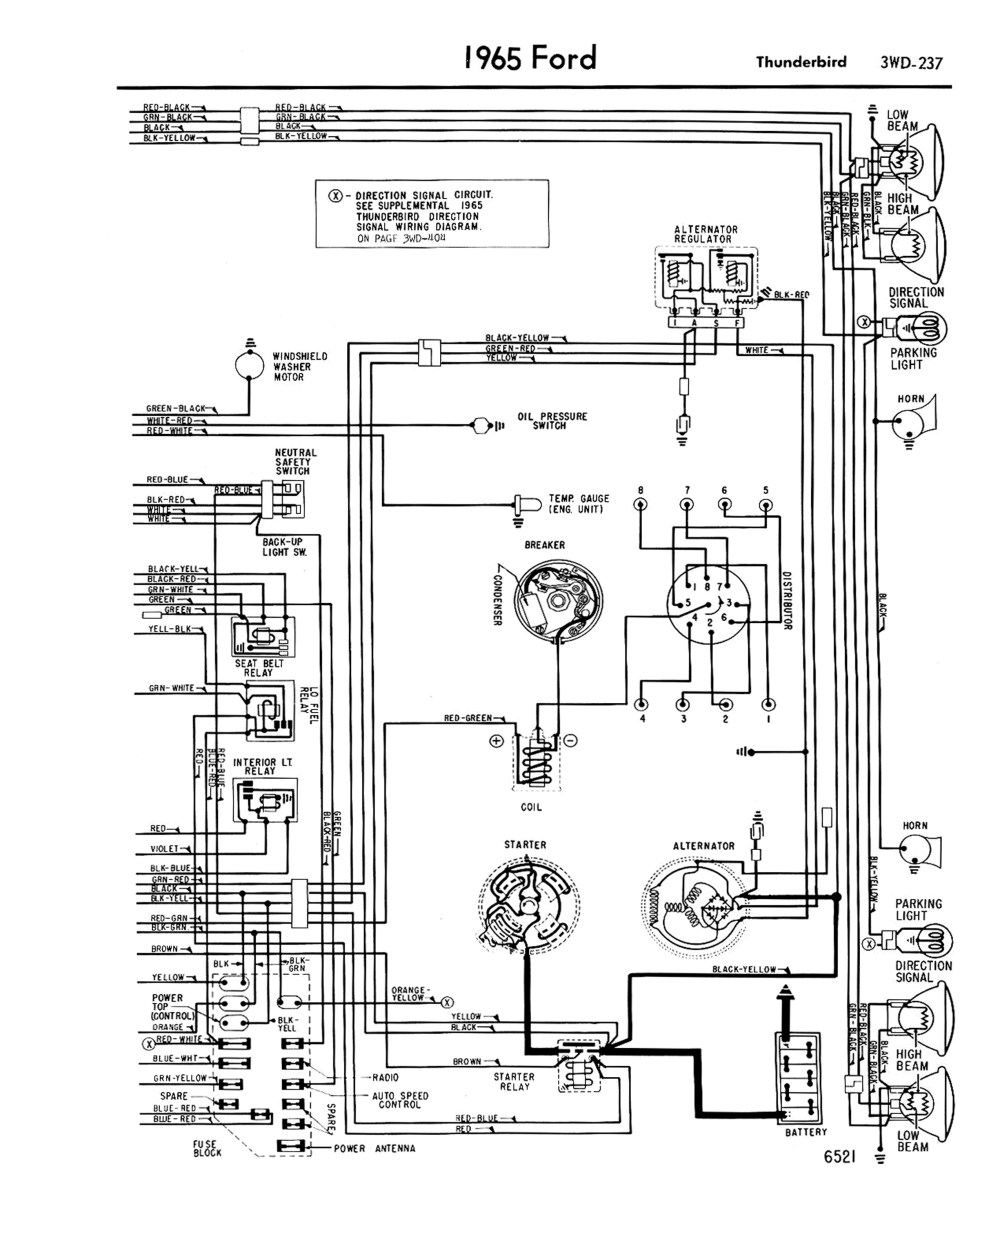 medium resolution of 1997 ford thunderbird wiring diagram wiring diagram toolbox 66 t bird wiring diagram 66 thunderbird wiring diagram